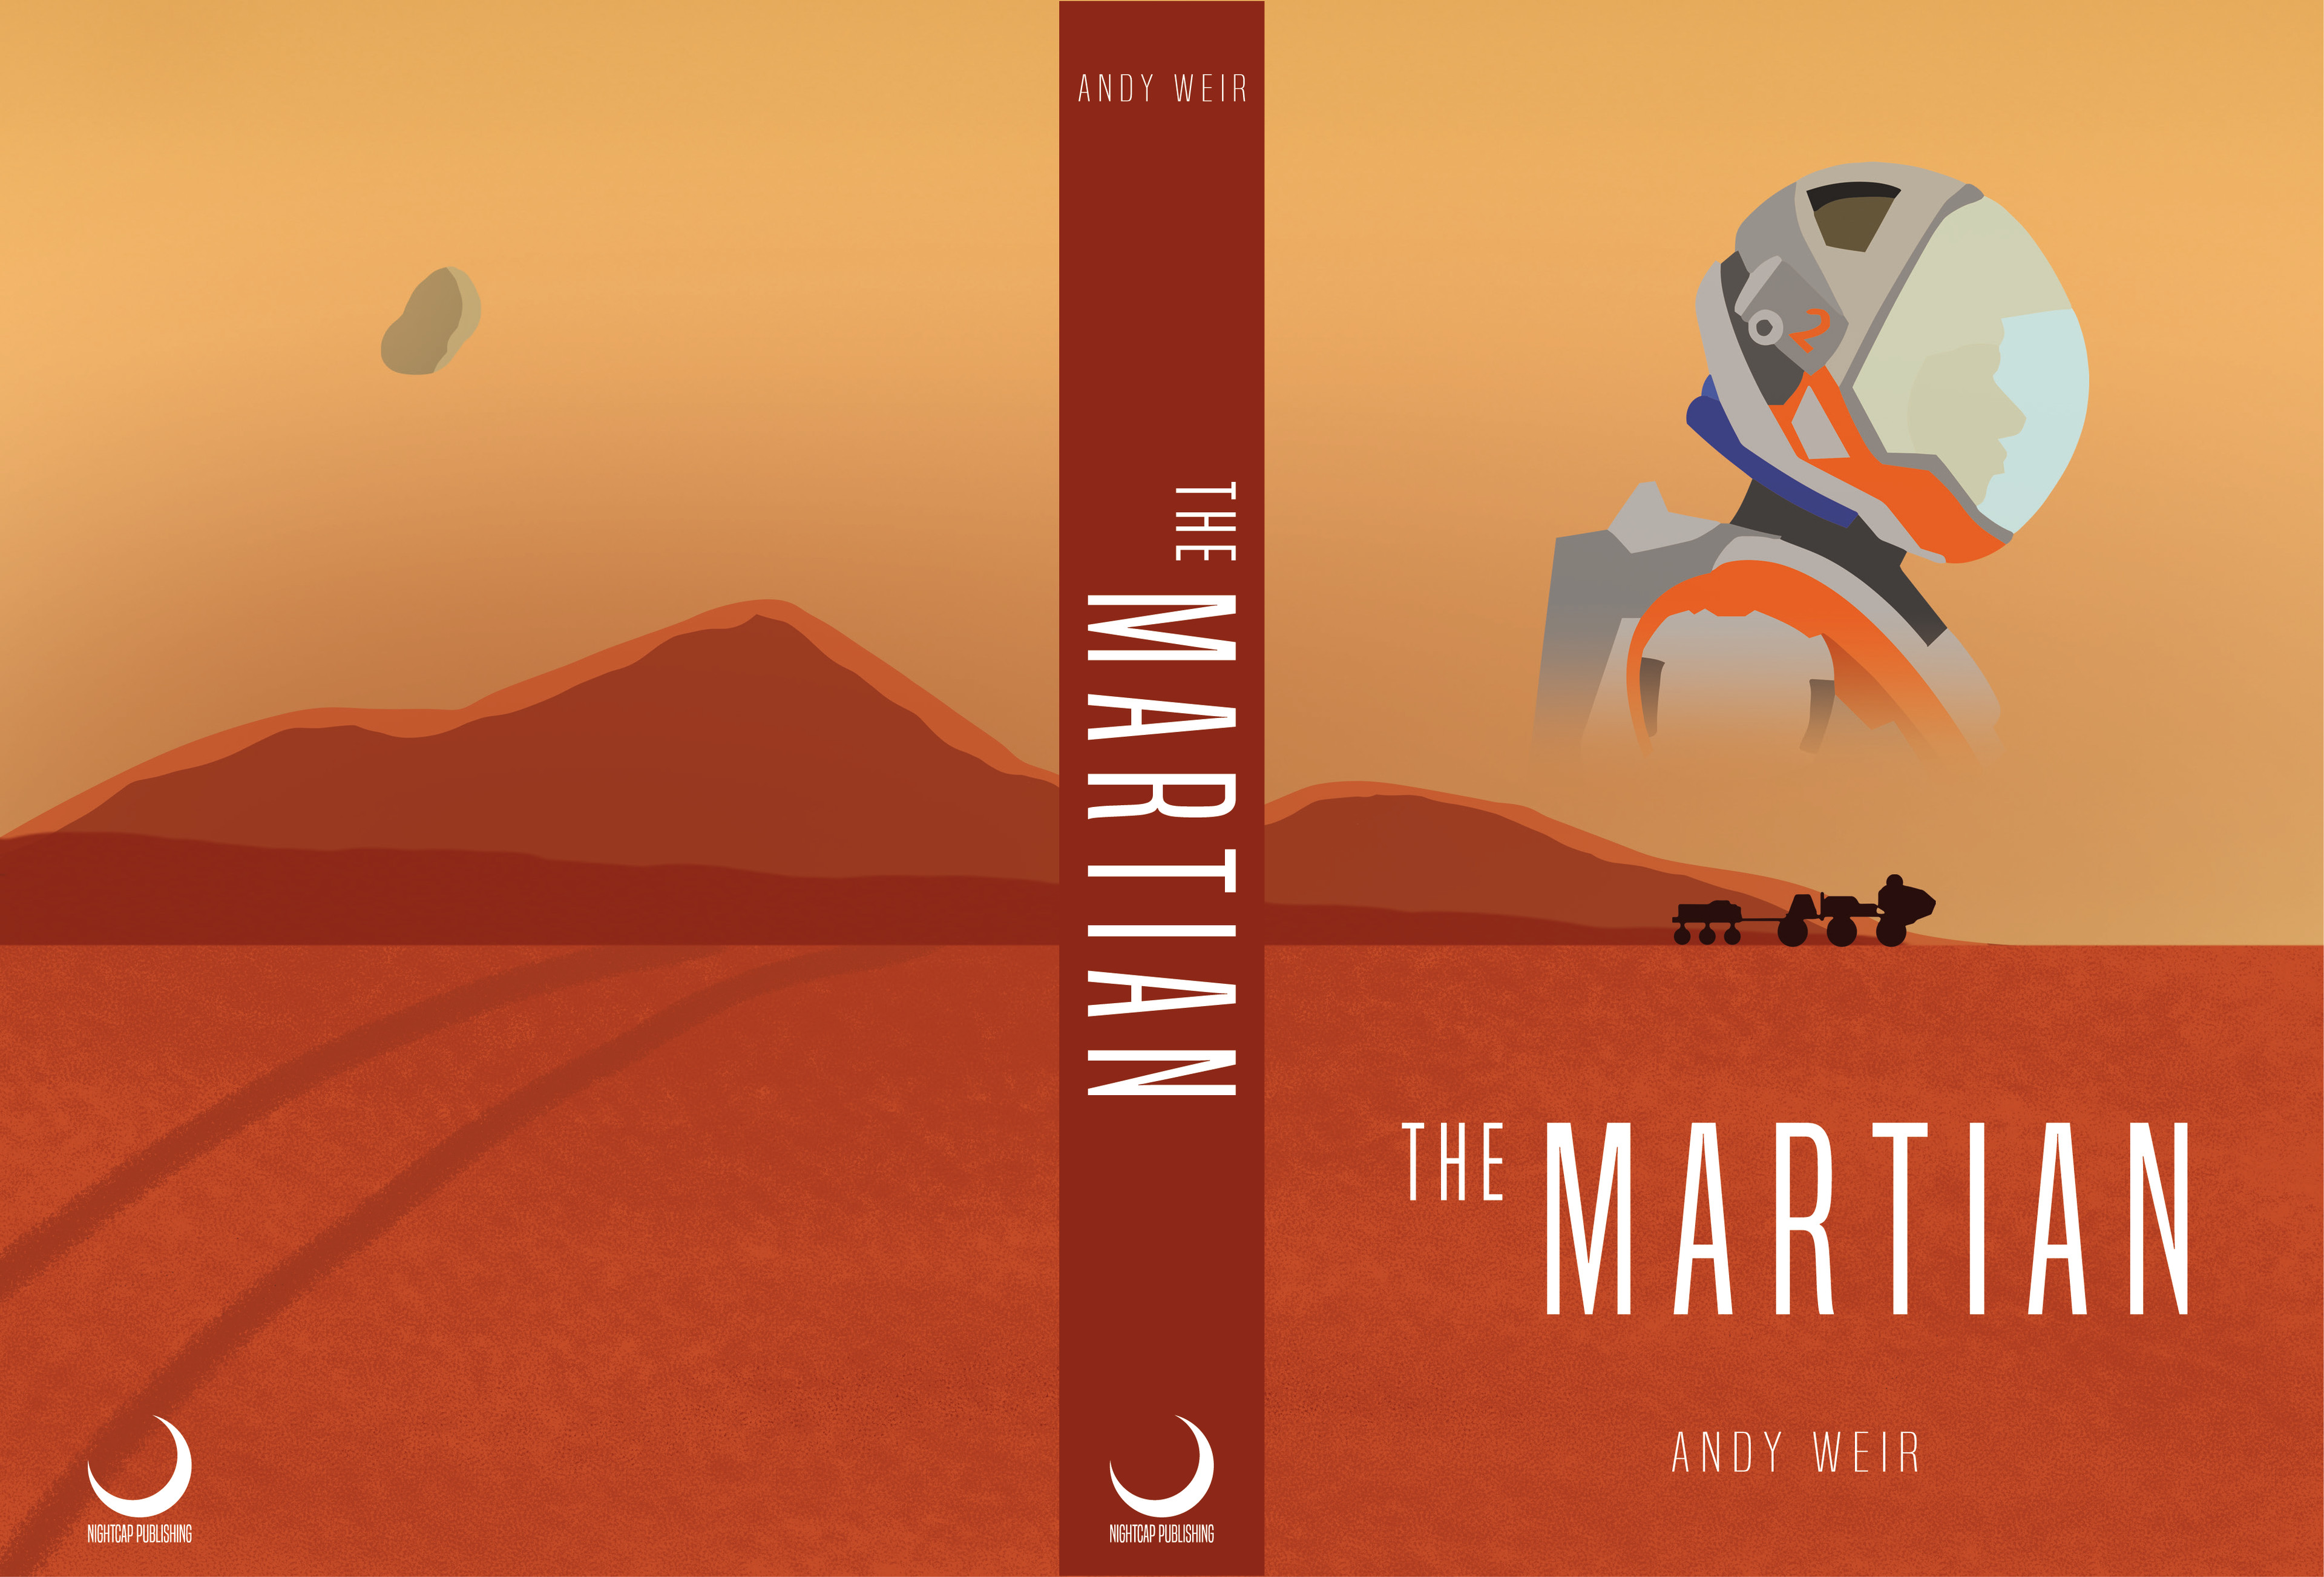 The finished version, featuring the spine and text. The publisher was a fictional one given to us within the brief.